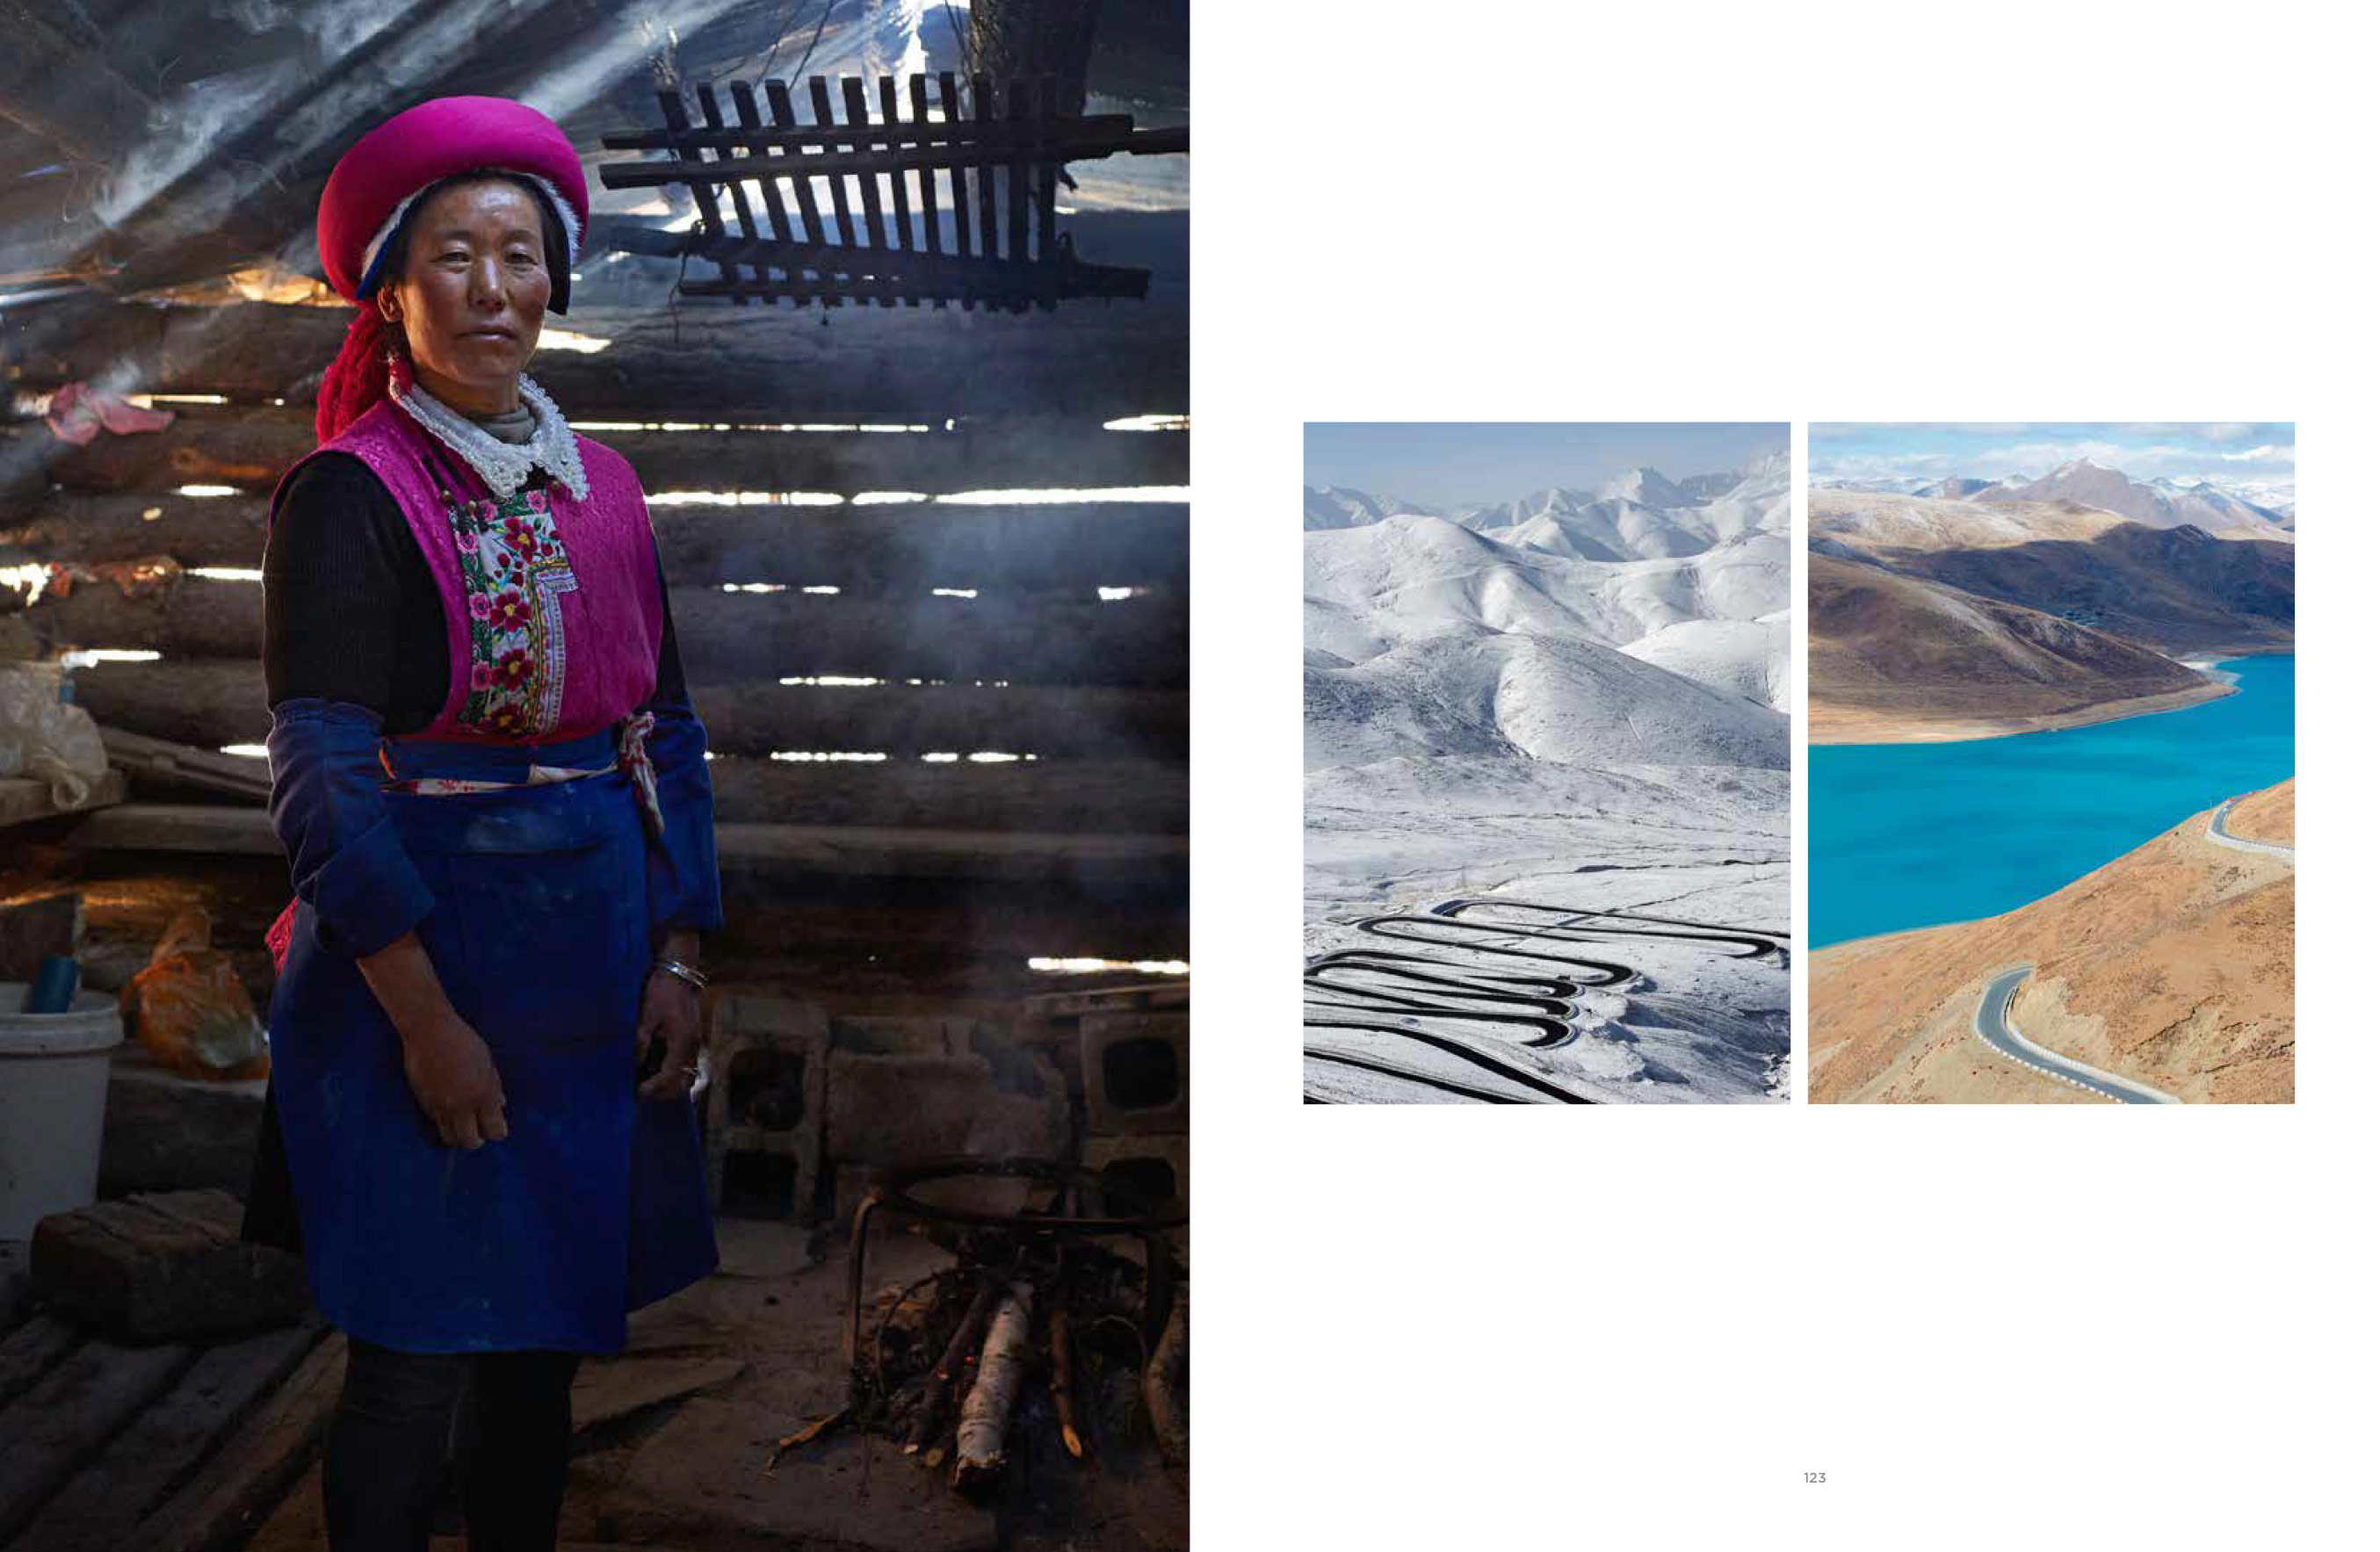 Sidetracked_Magazine_3_Volume_13_Simon_Urwin_Travel_Photographer_Writer